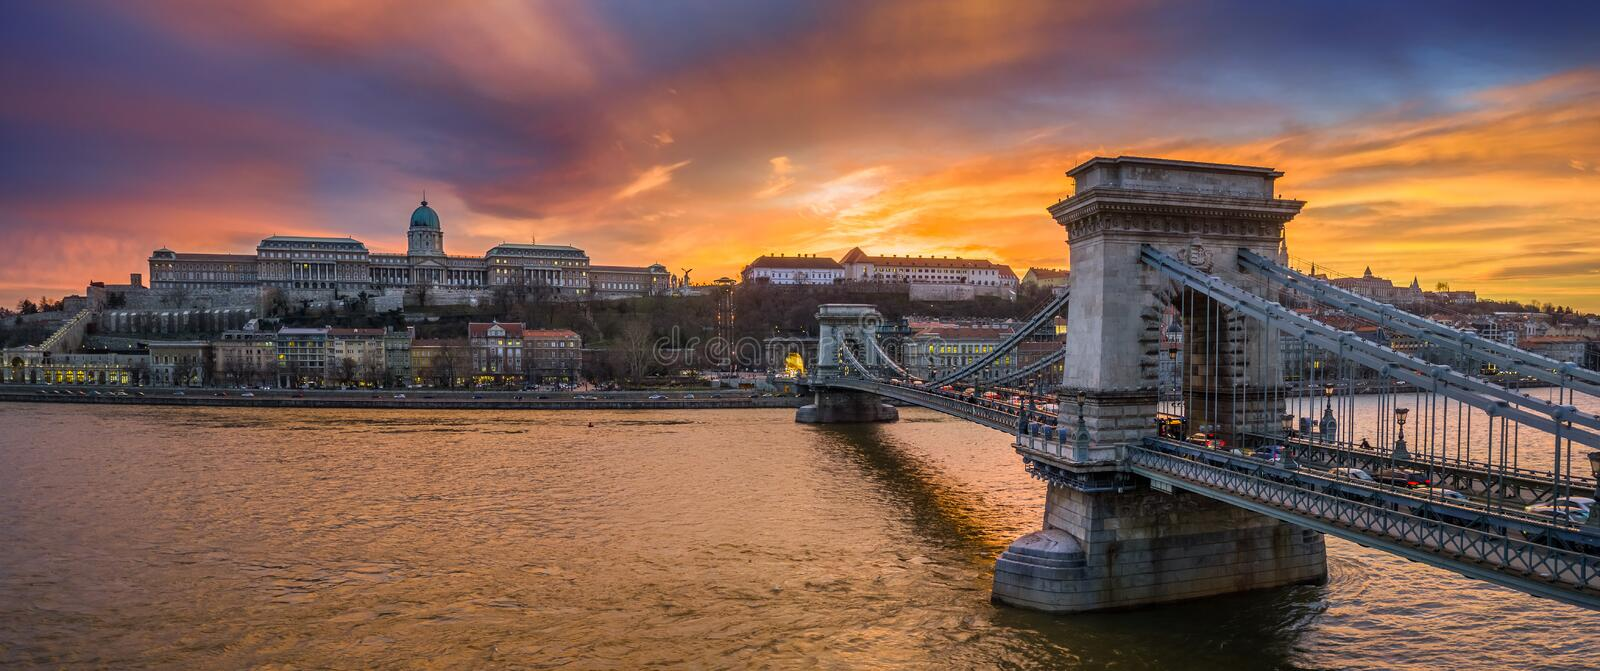 Budapest, Hungary - Aerial panoramic view of Szechenyi Chain Bridge with Buda Tunnel and Buda Castle Royal Palace royalty free stock photo